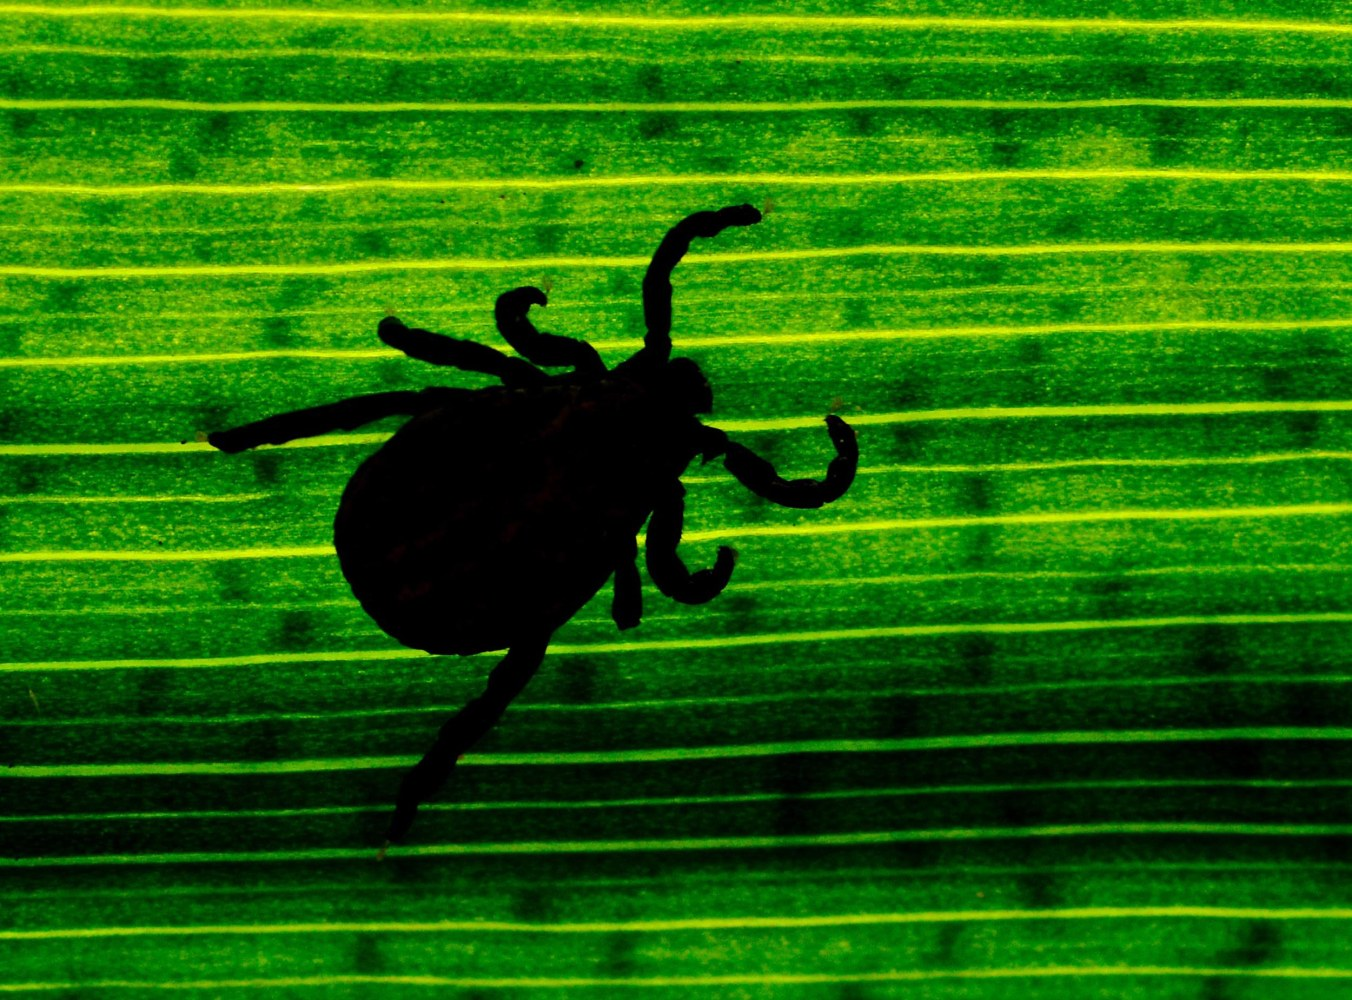 New bacterial species that causes Lyme disease discovered